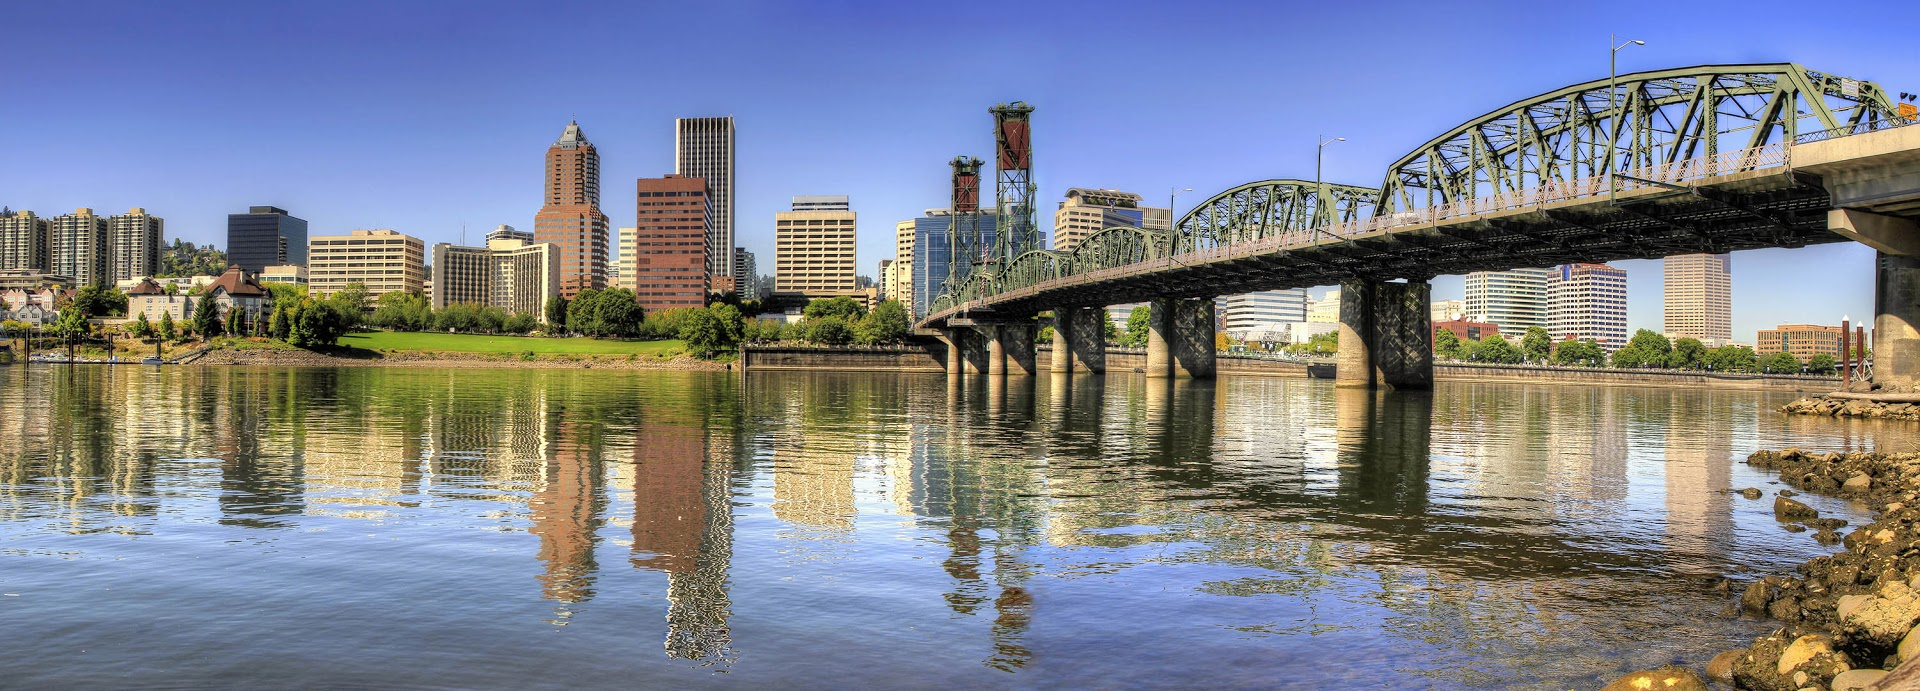 portland, or bridge and river with city view